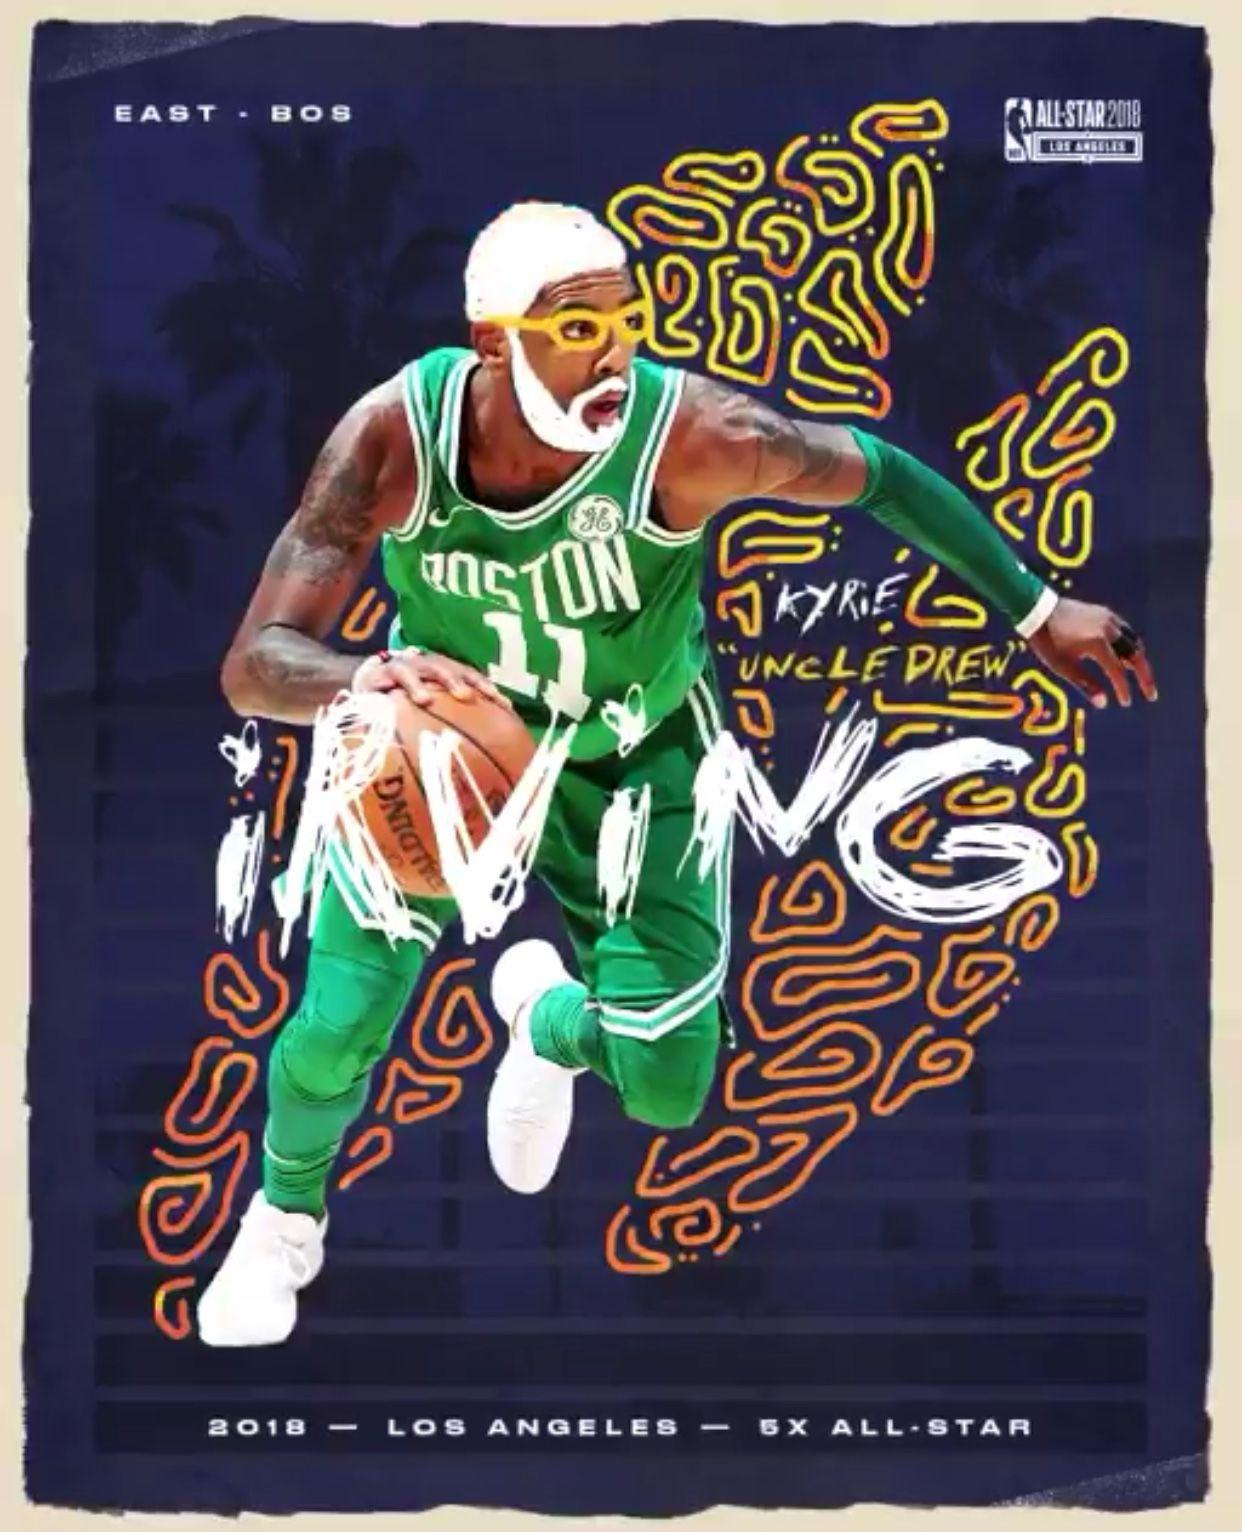 Uncle Drew Wallpapers